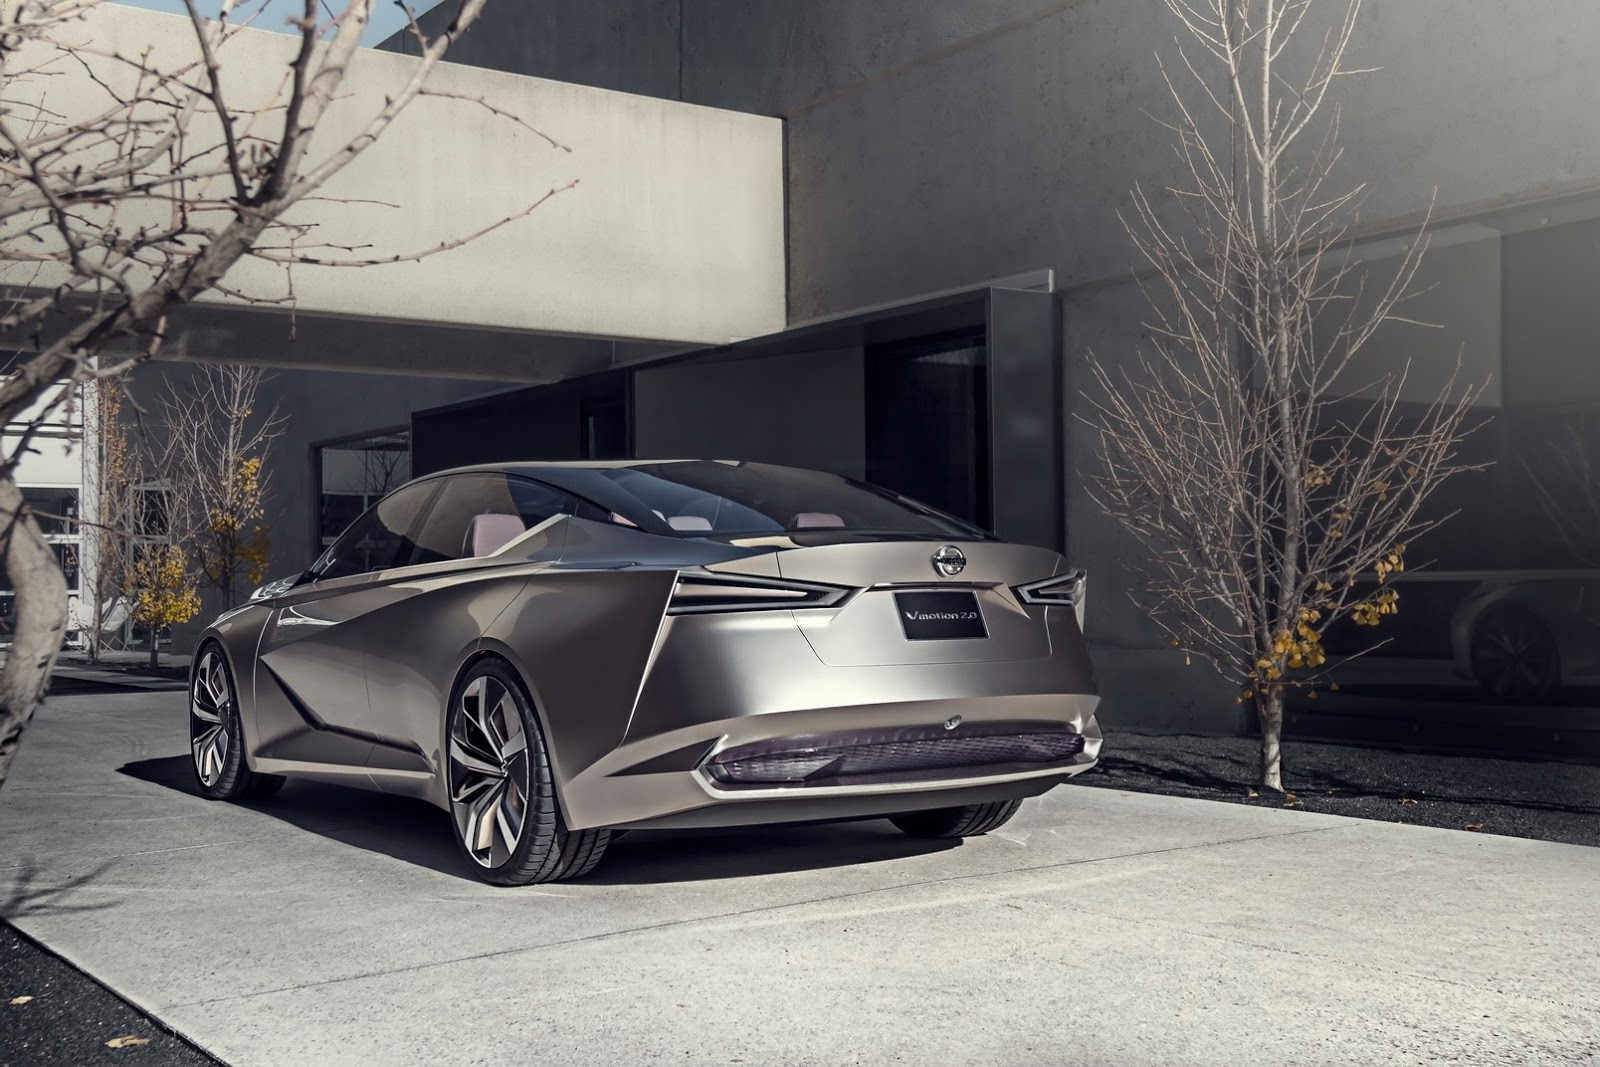 Nissan Vmotion 2.0 concept (5)